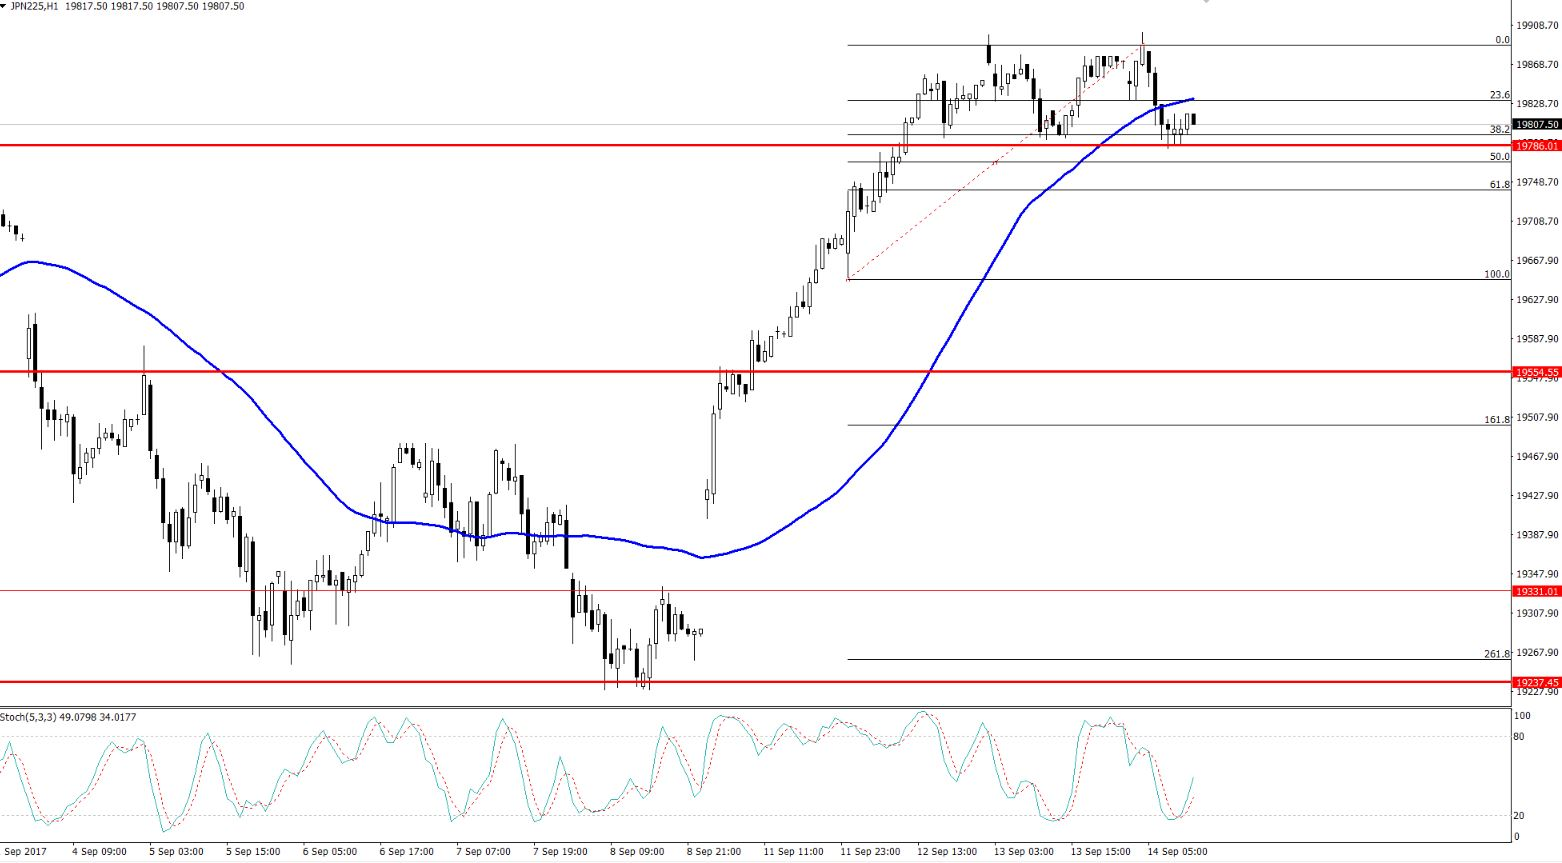 Nikkei - Hourly Timeframe - Double Bottom Support